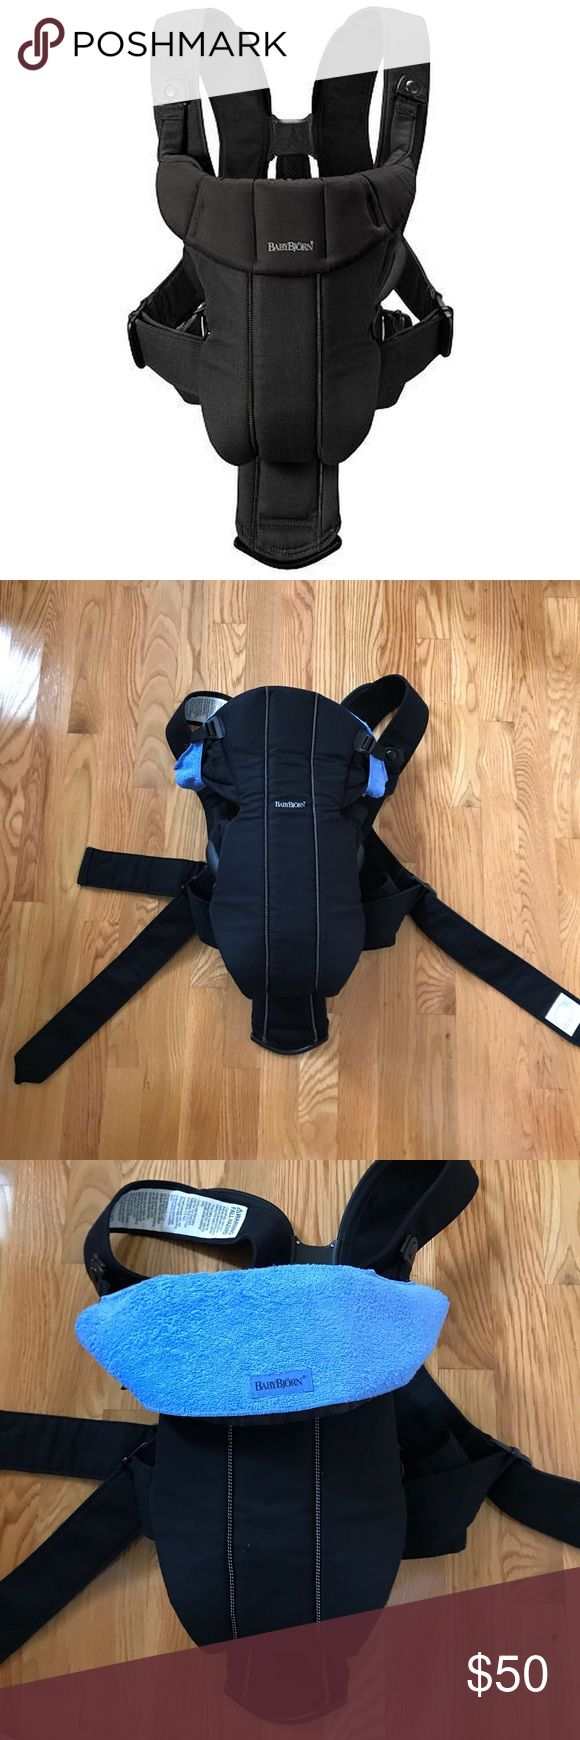 "Baby Bjorn Active black Baby Bjorn Active black. Excellent condition. We used it only a few times. NO stains, rips, never had any ""baby accidents"". Comes from smoke and animal free house. Comes with the changing bib and the manual. BabyBjorn Accessories Bags"